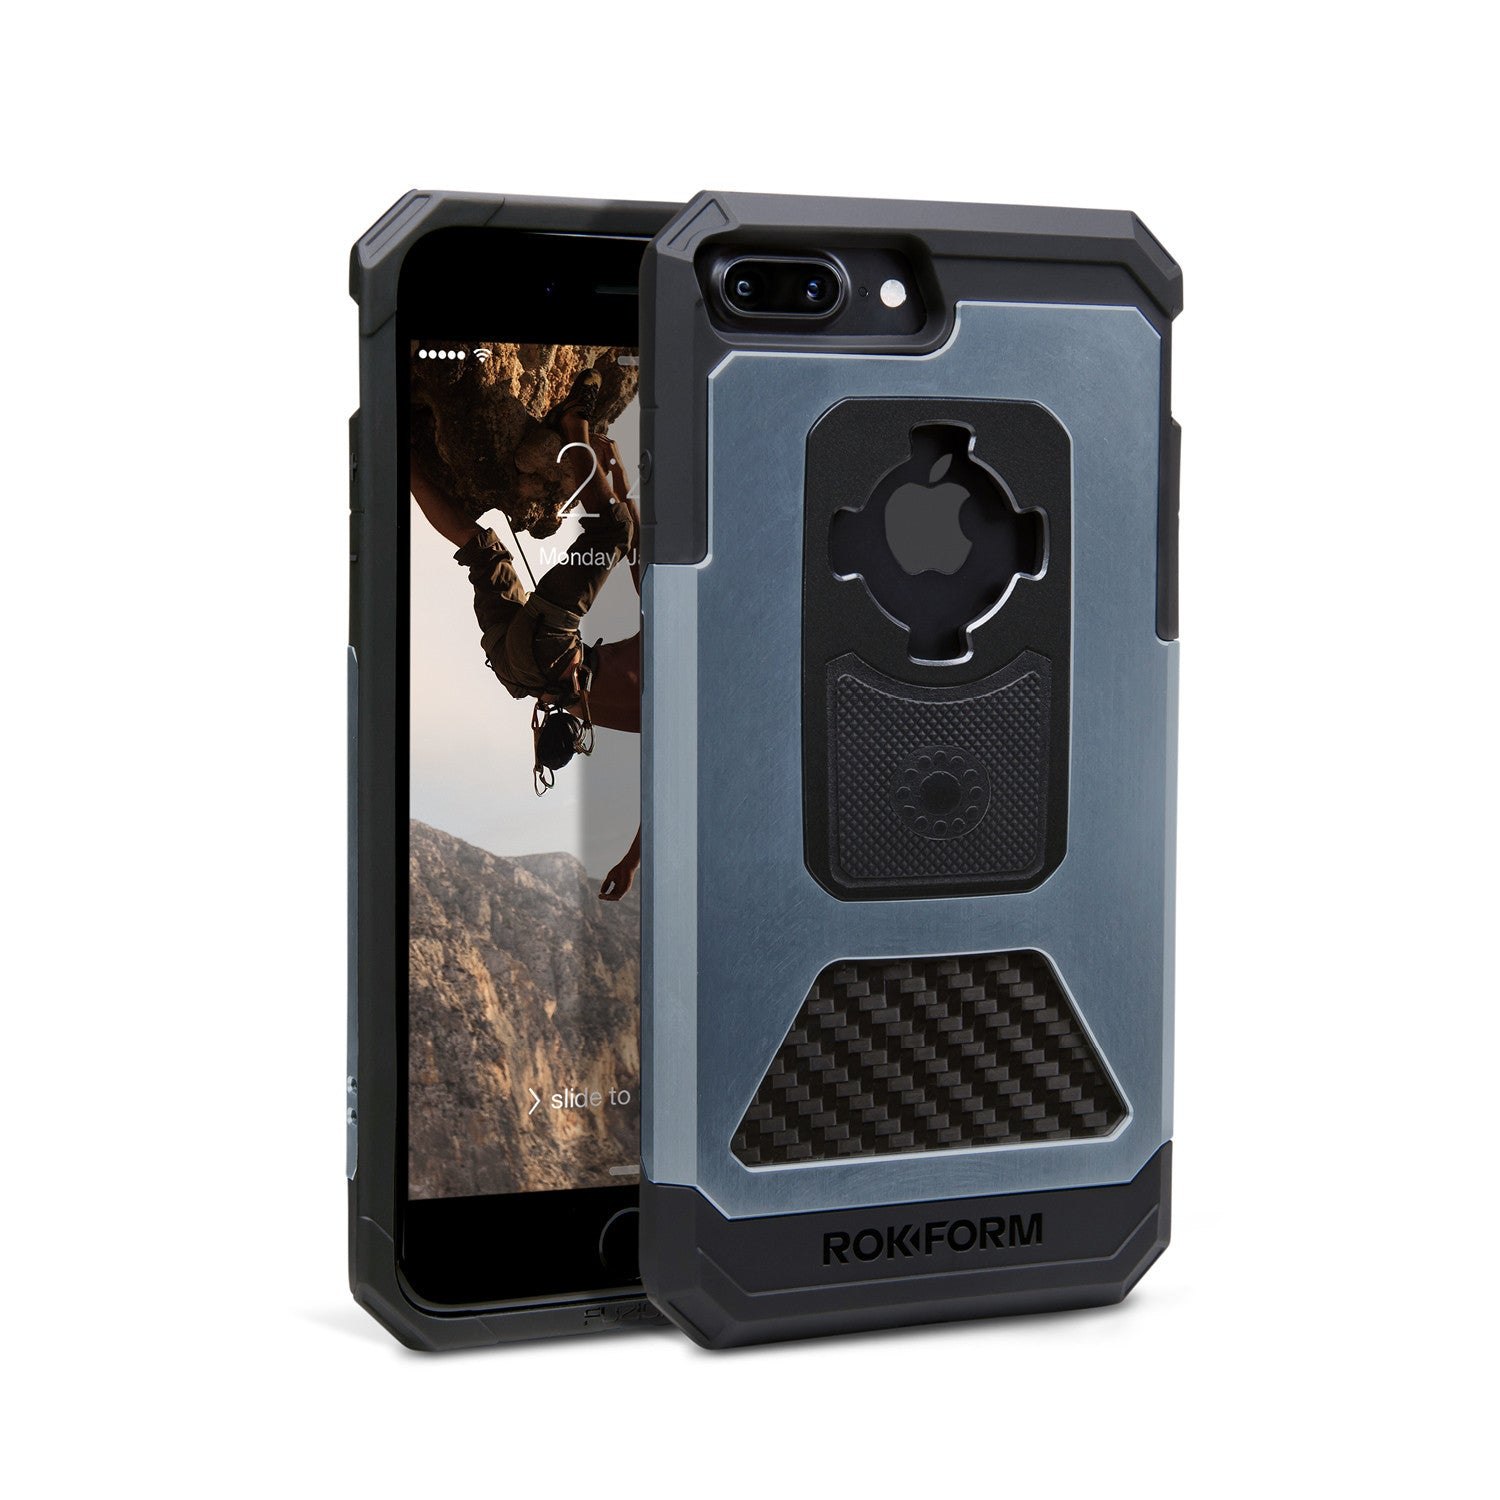 Fuzion Pro Back Plate - iPhone 8 Plus / 7 Plus - Rokform